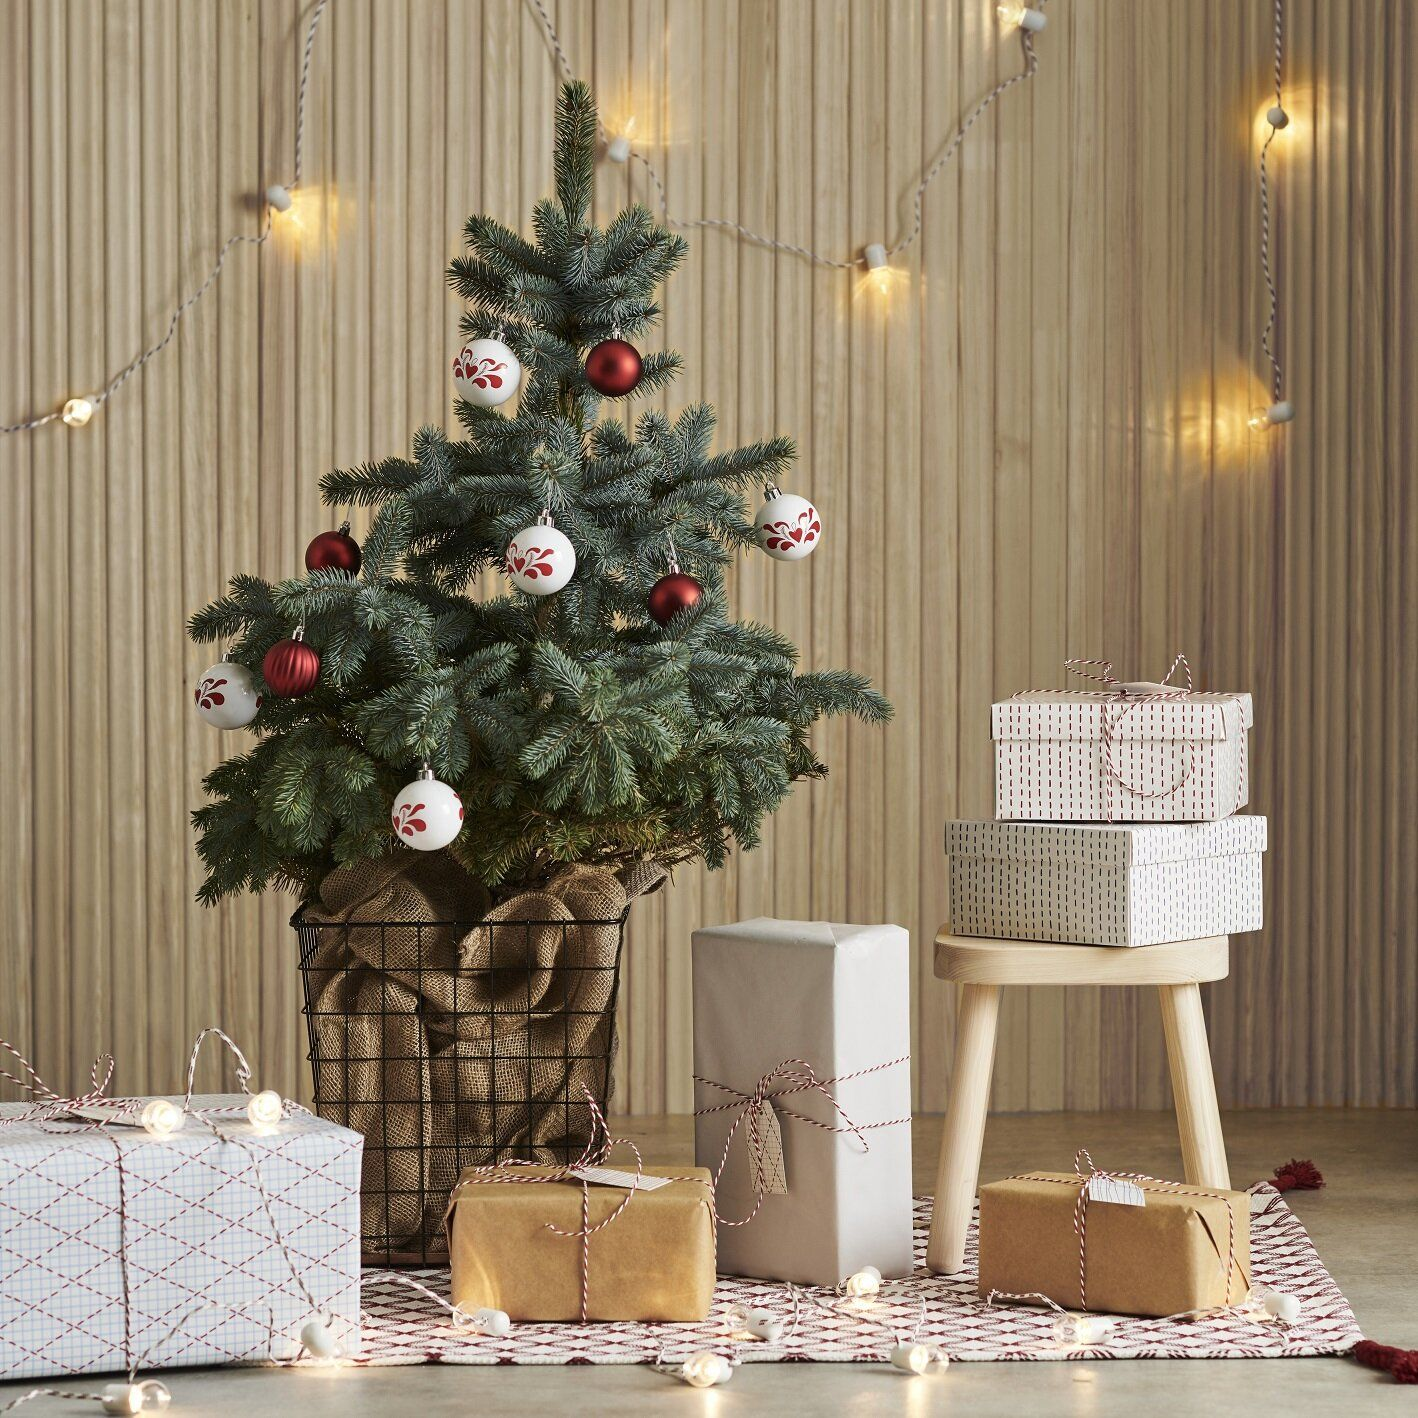 Ikea Christmas Collection 2019 An Extra Winter Collection The Nordroom In 2020 Ikea Christmas Christmas Decorations Christmas Home